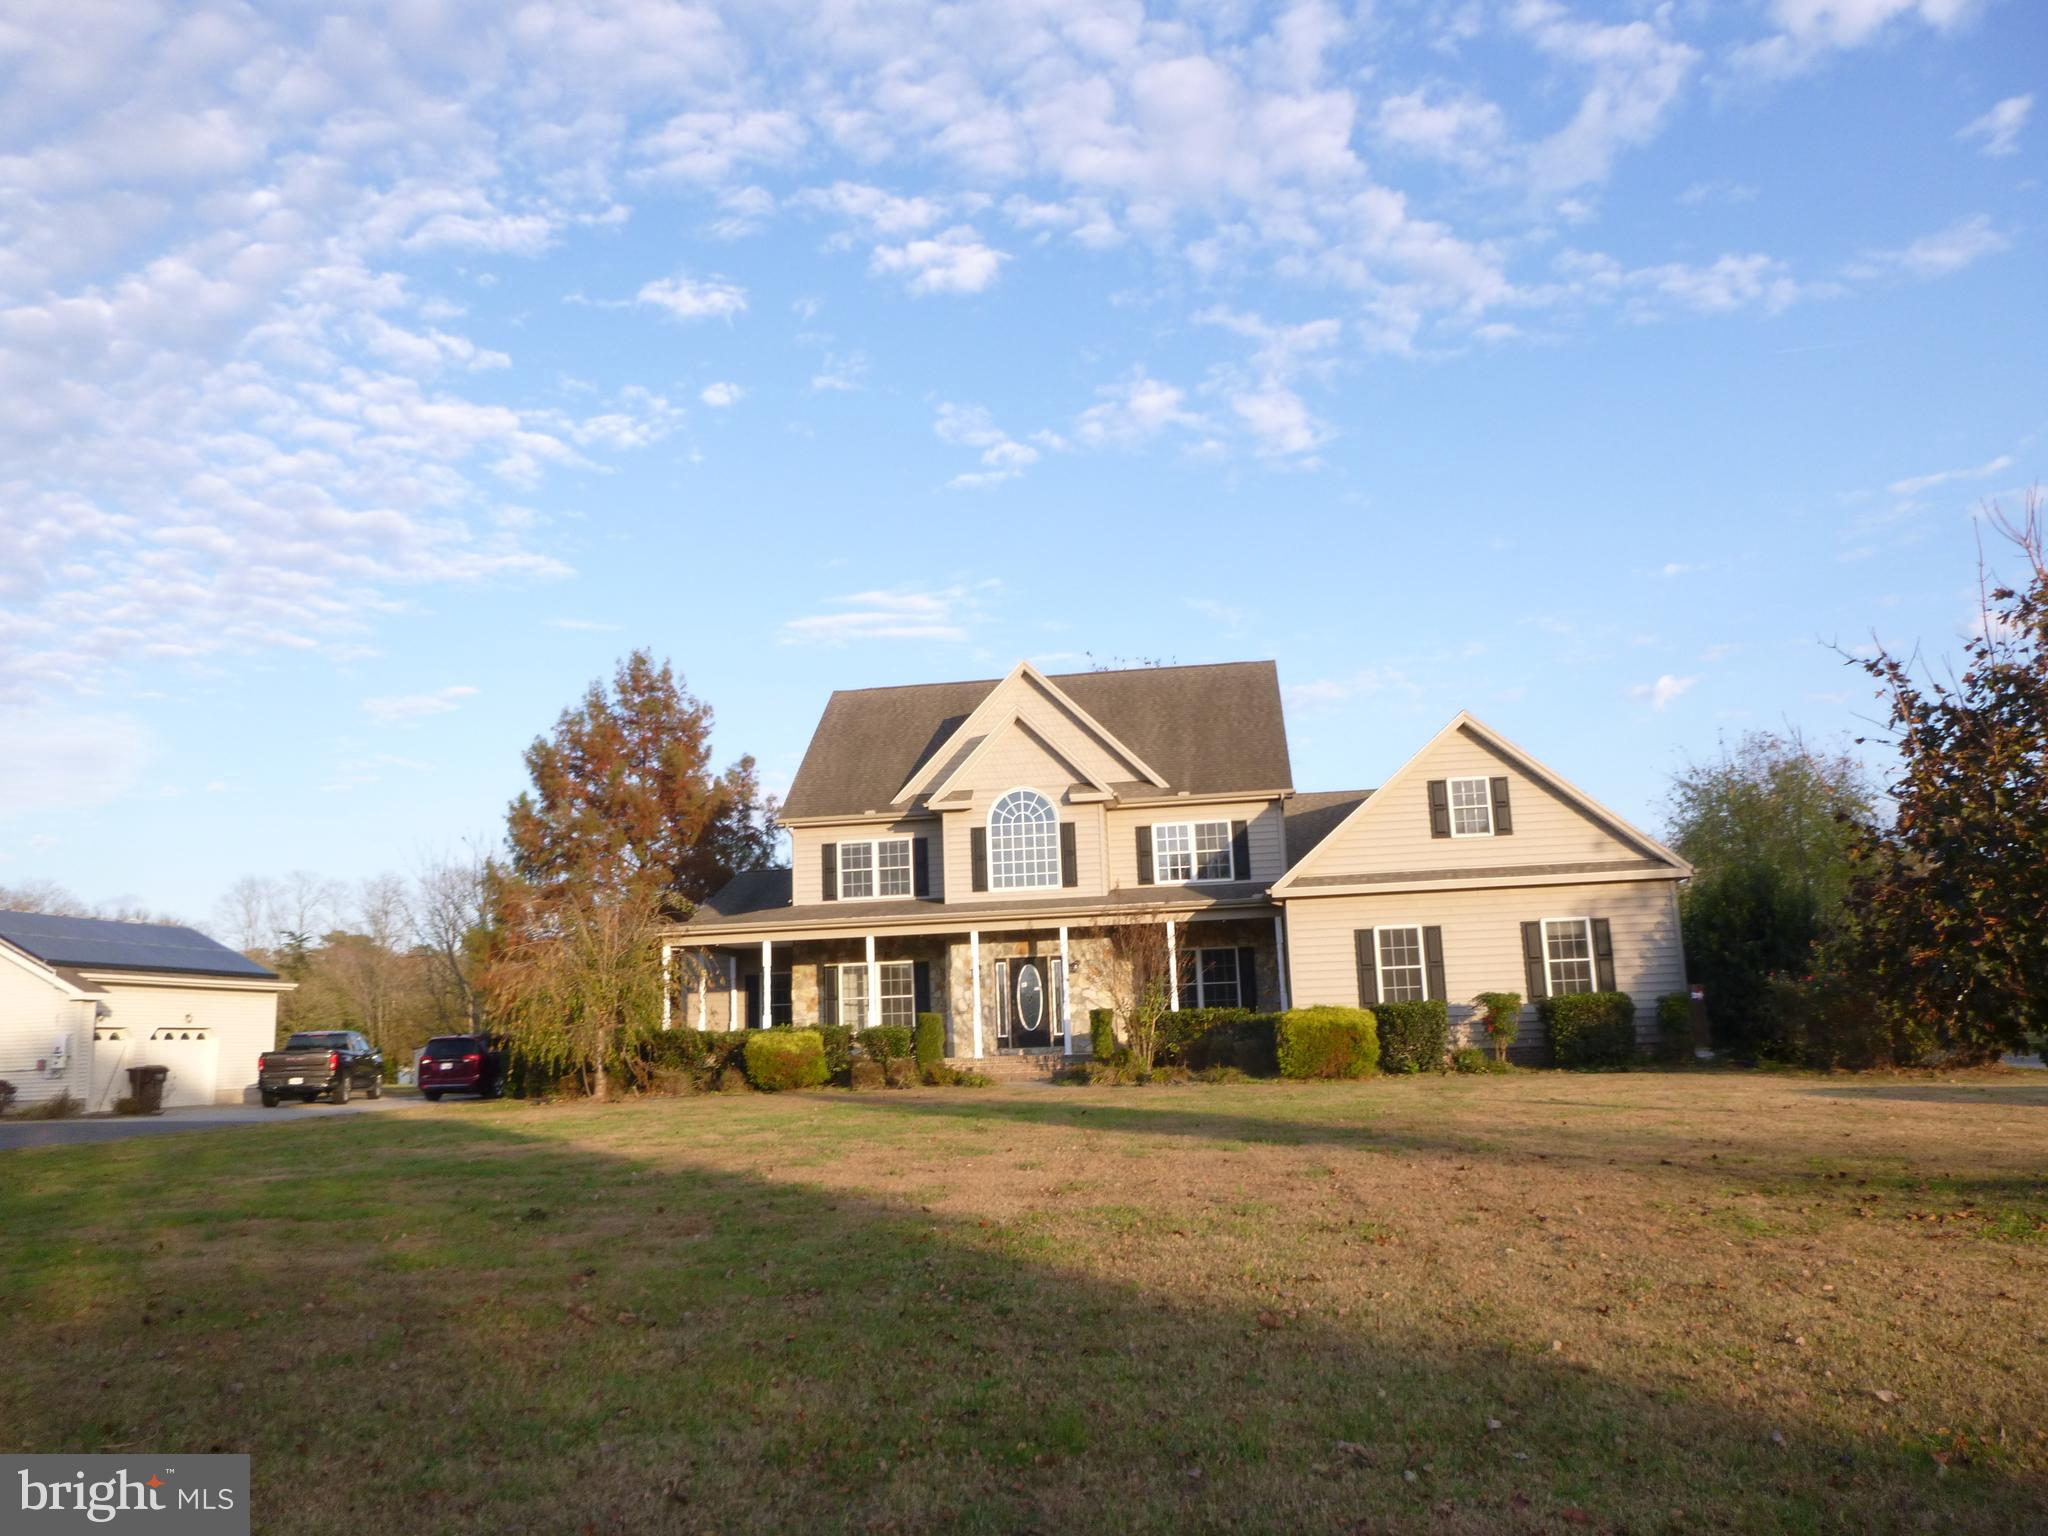 3389 RESIDENTIAL DRIVE, EDEN, MD 21822